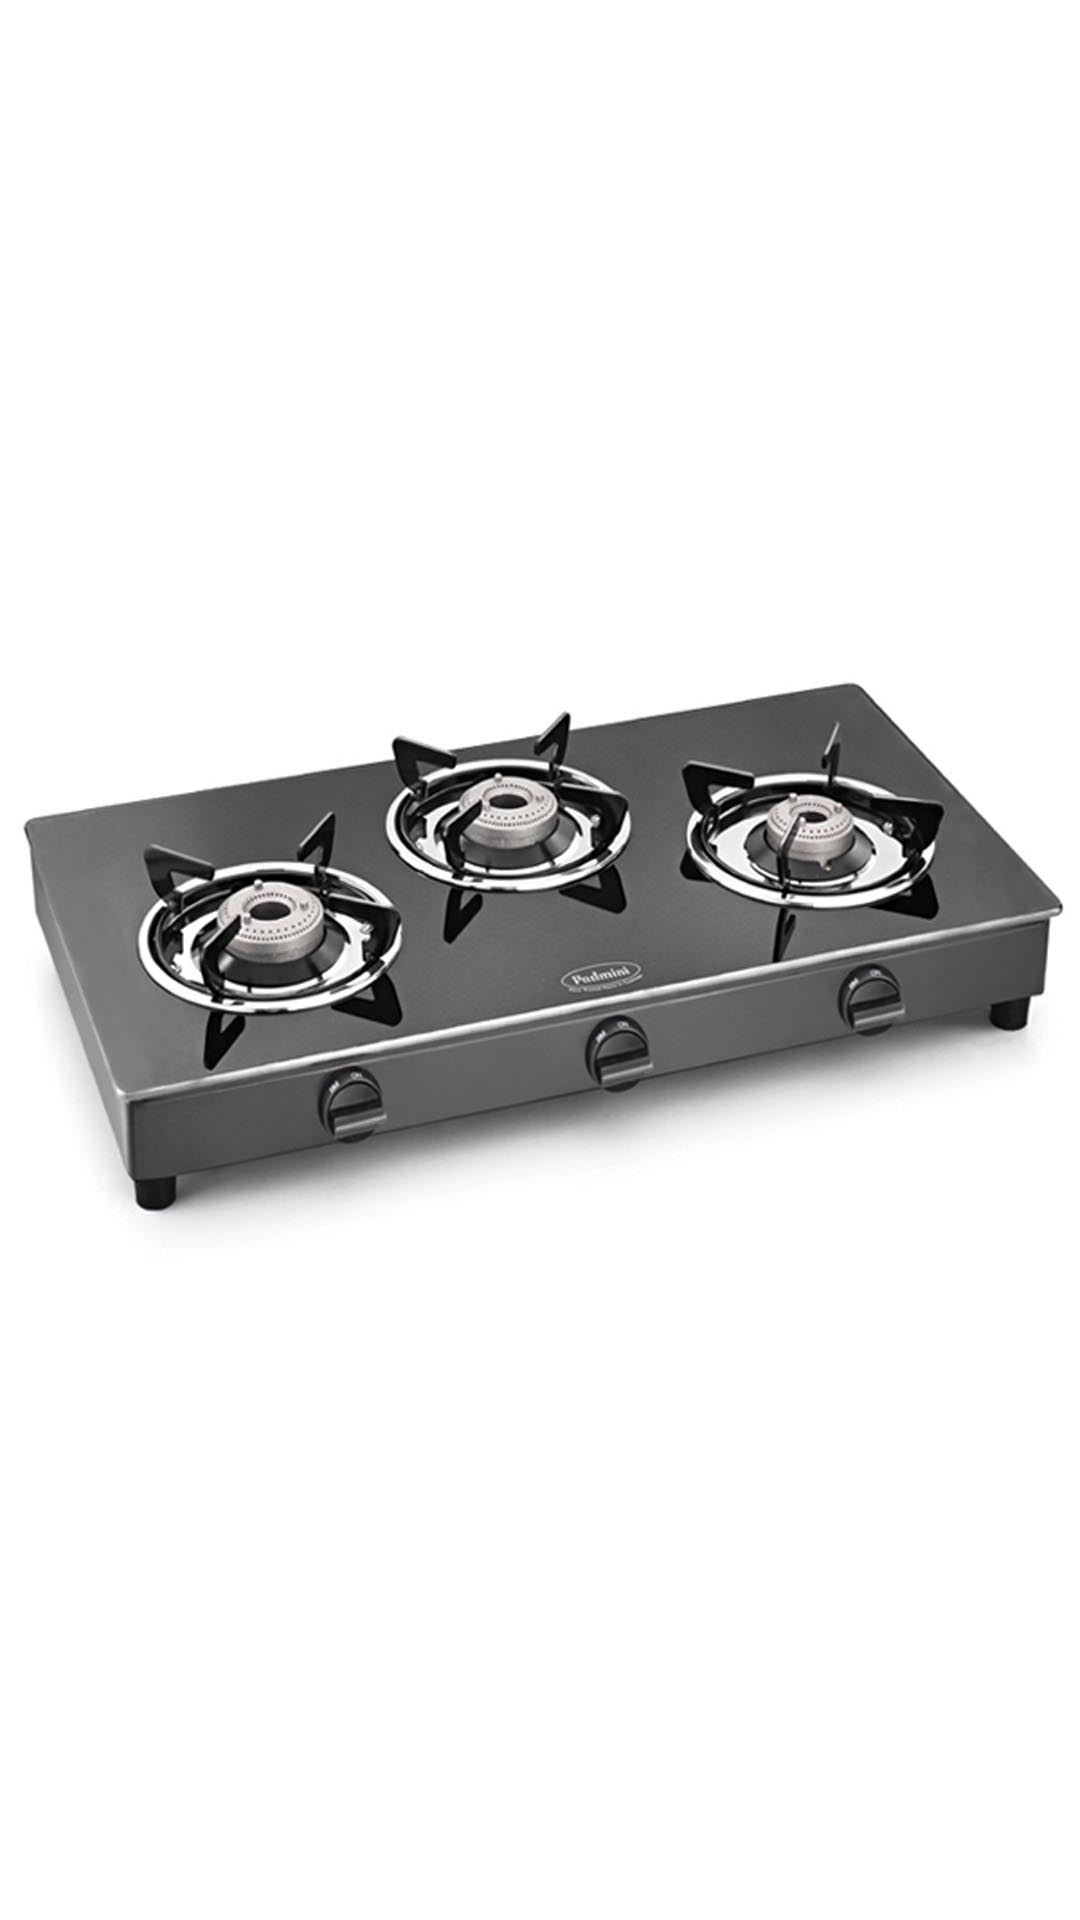 CS-3GT Prima 3 Burner Gas Cooktop